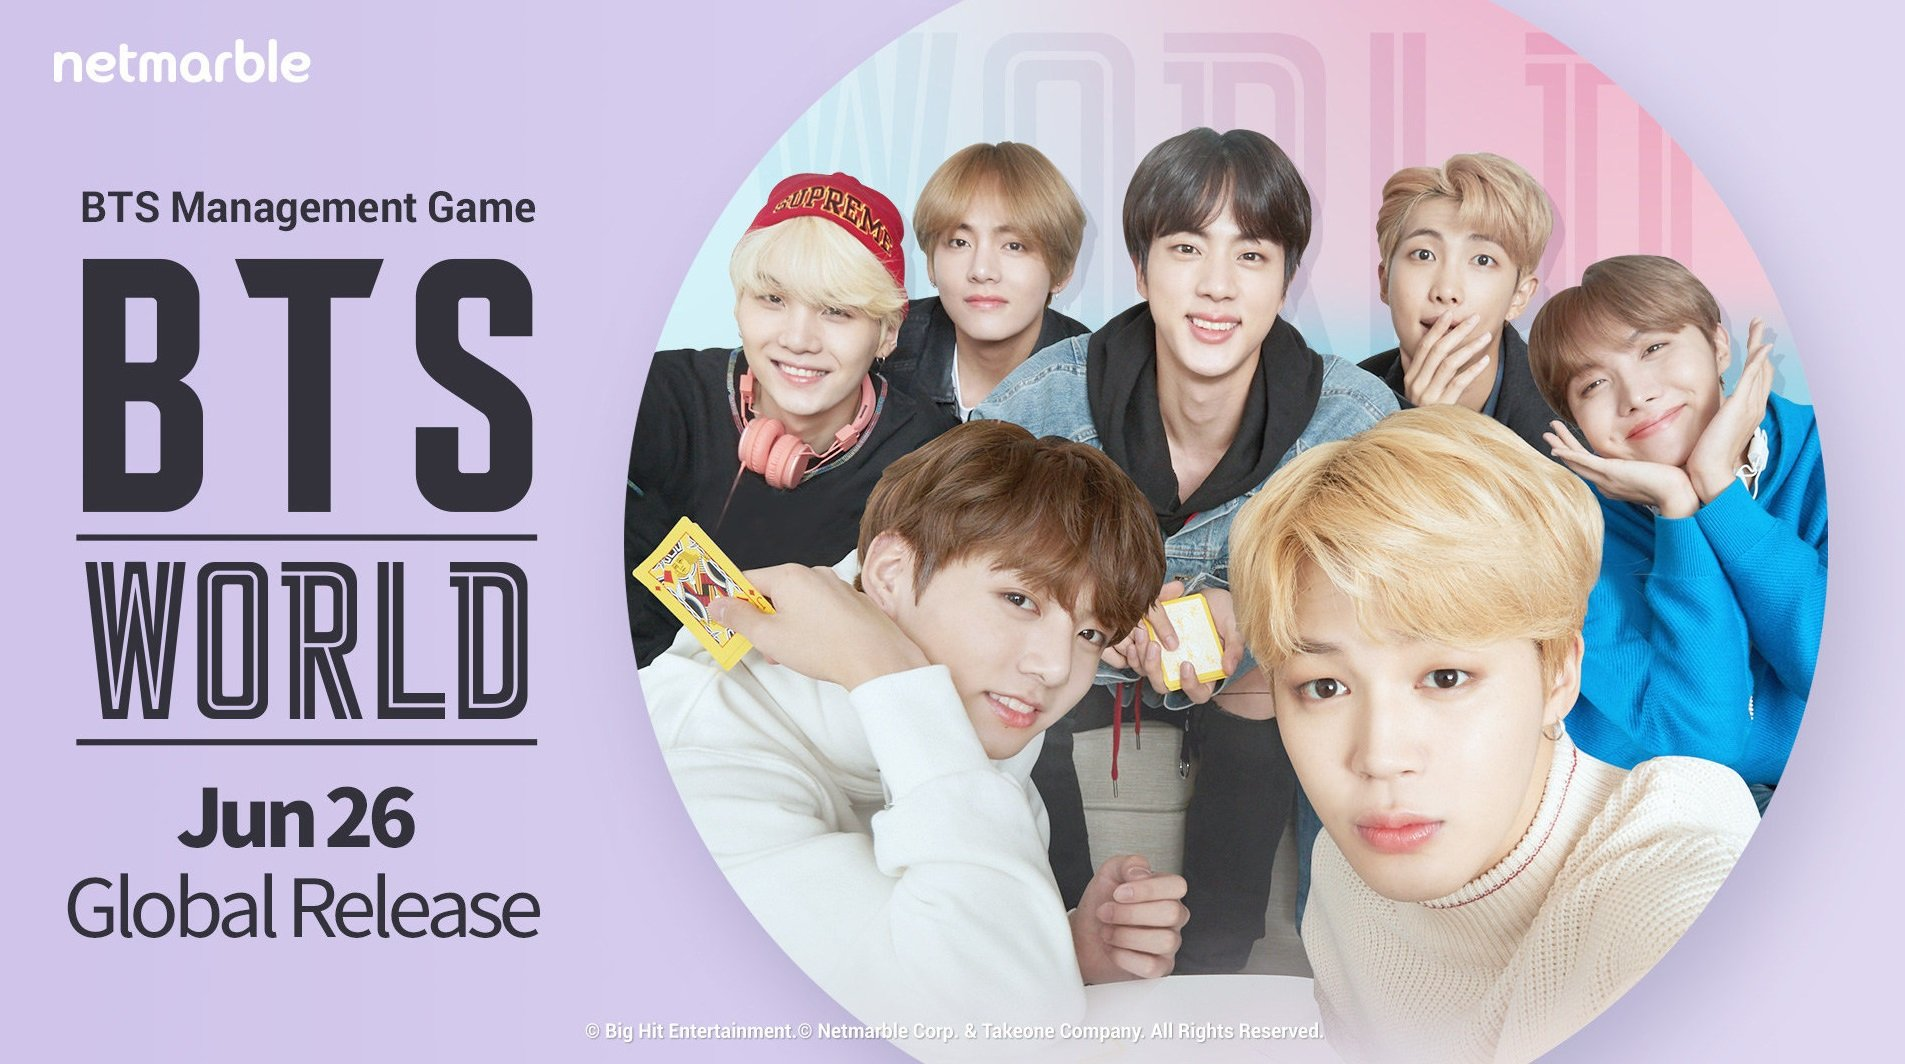 In BTS World, any photo card you unlock can be used as your profile picture.